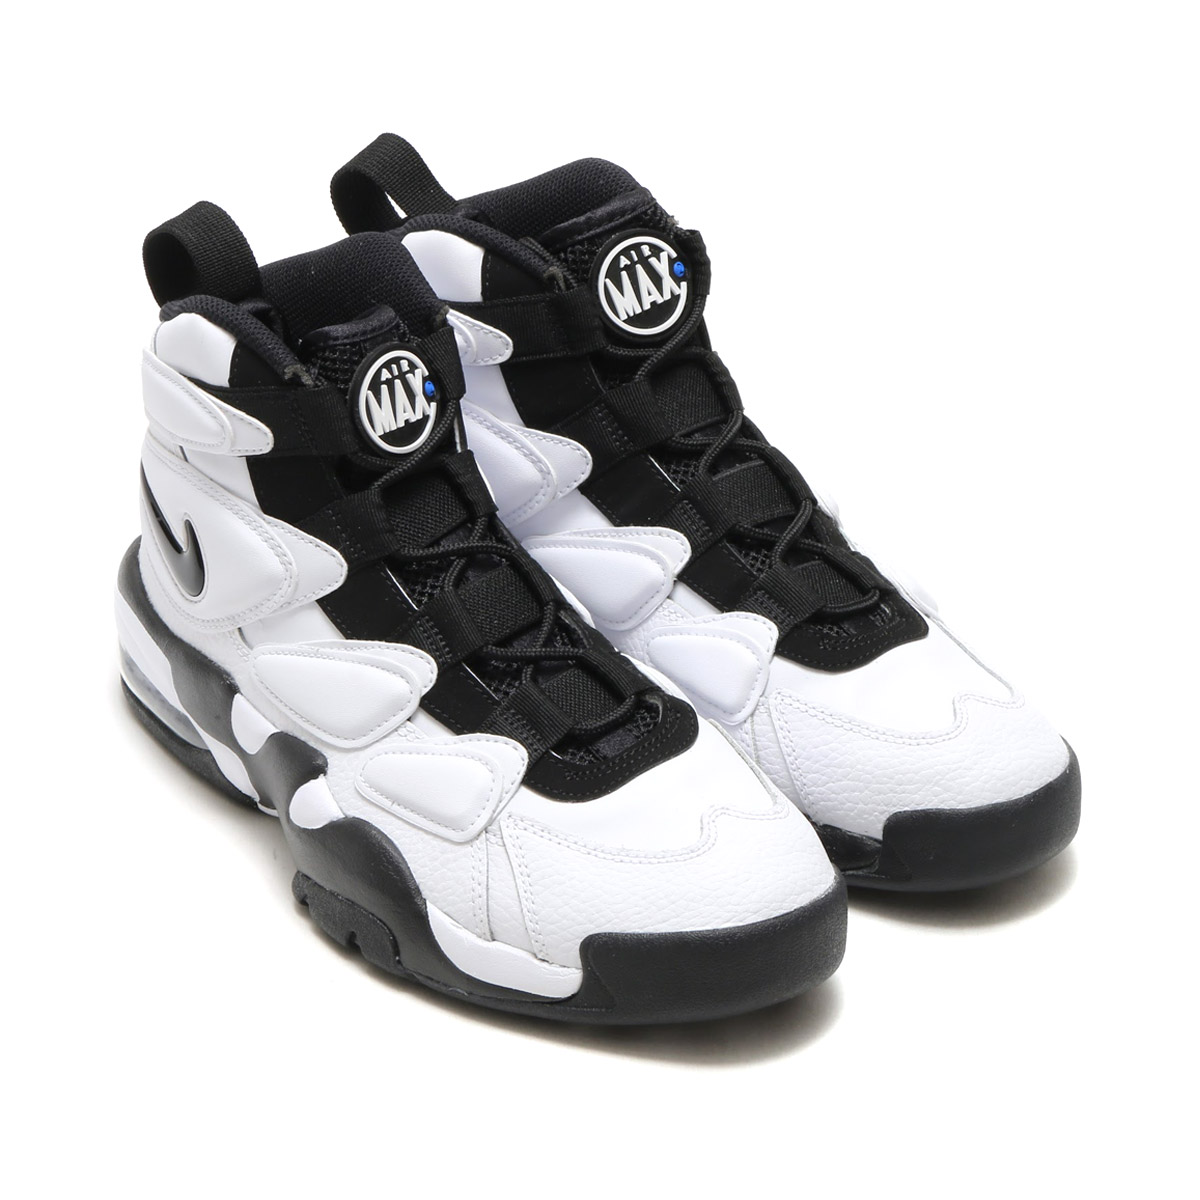 new style 7acee b8e76 ... air more uptempo 2 white black royal ccb19 7d37f  italy i will remember  a game of the mid 90s only by a basketball fan having